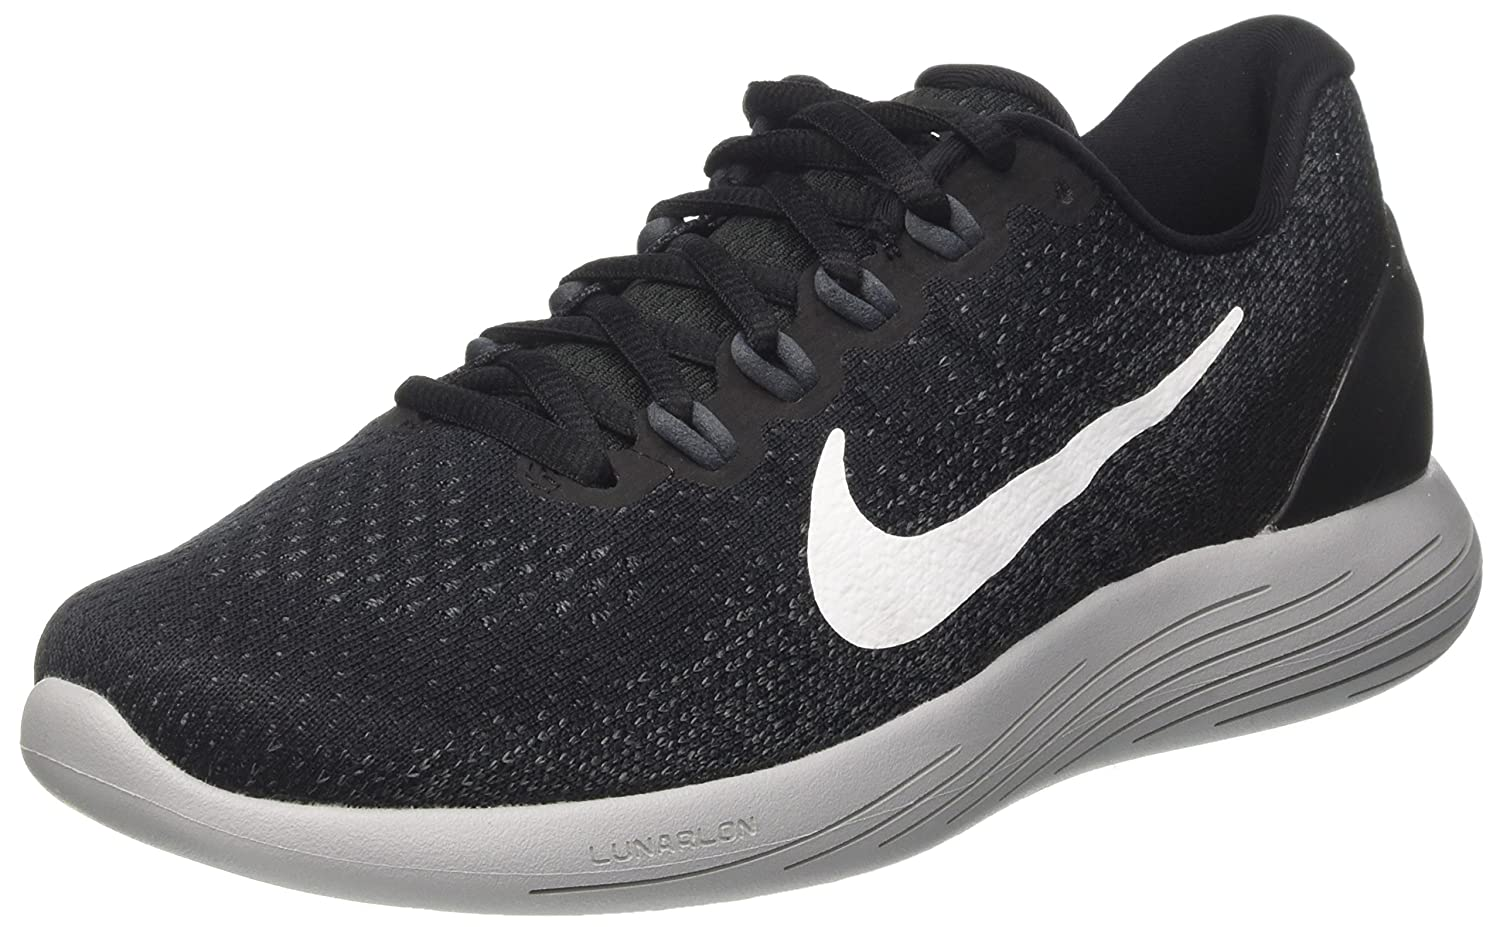 179b7b22207f44 Nike Men s Lunarglide 9 Running Shoe Black White Dark Grey Wolf Grey Size 7.  5 M US  Buy Online at Low Prices in India - Amazon.in